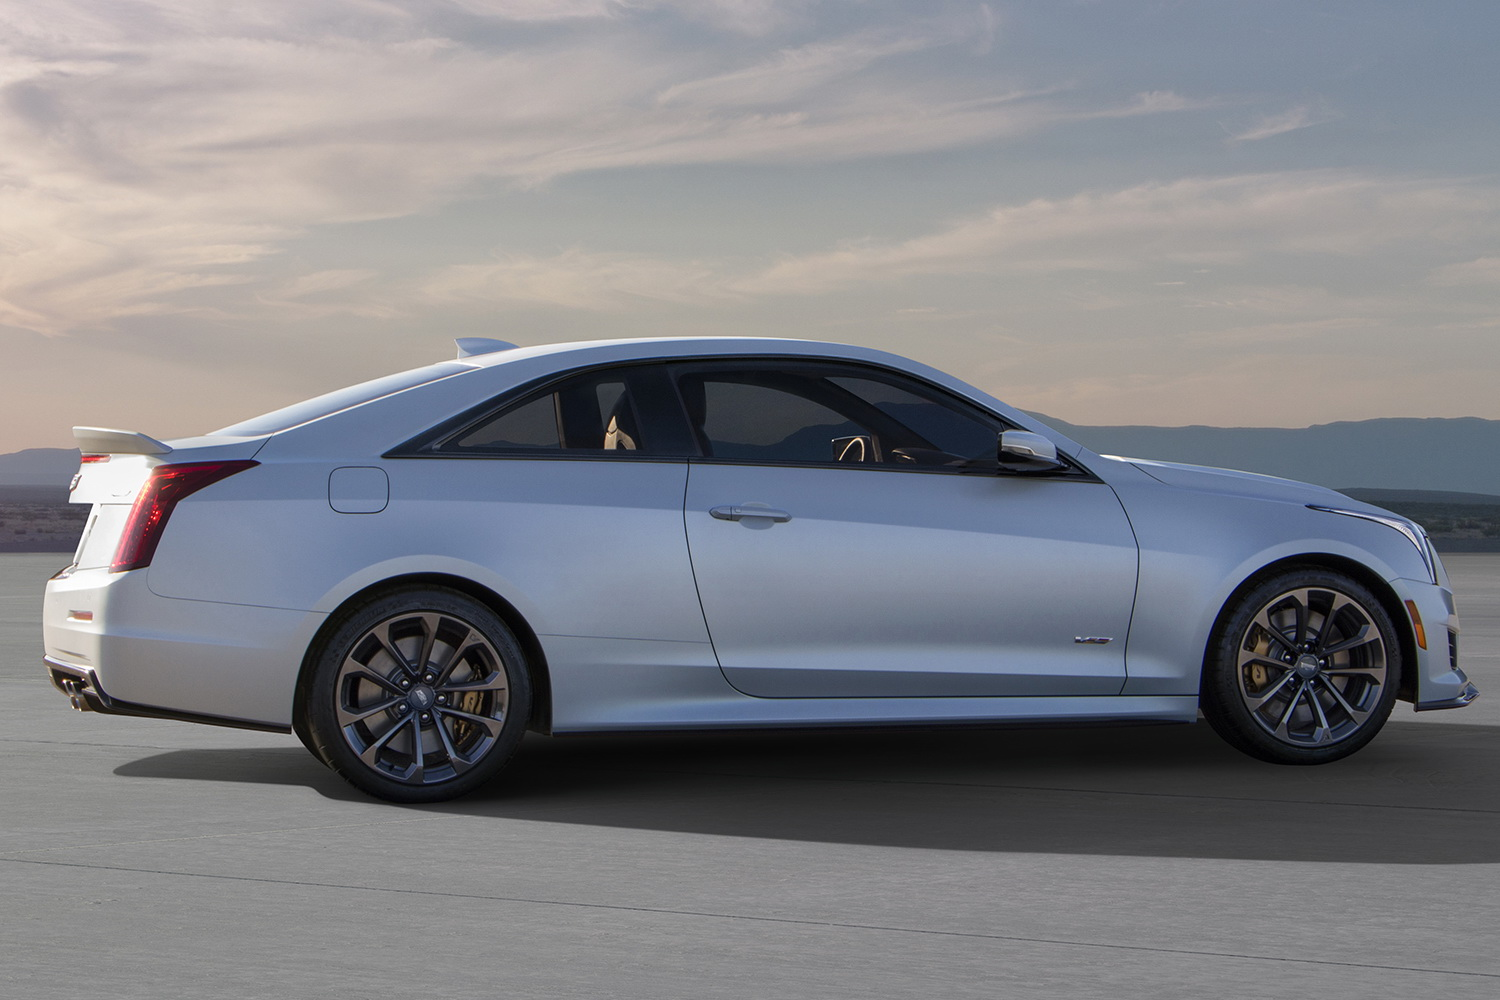 cadillac 39 s new 2016 ats v sedan and coupe with 455hp w video. Black Bedroom Furniture Sets. Home Design Ideas